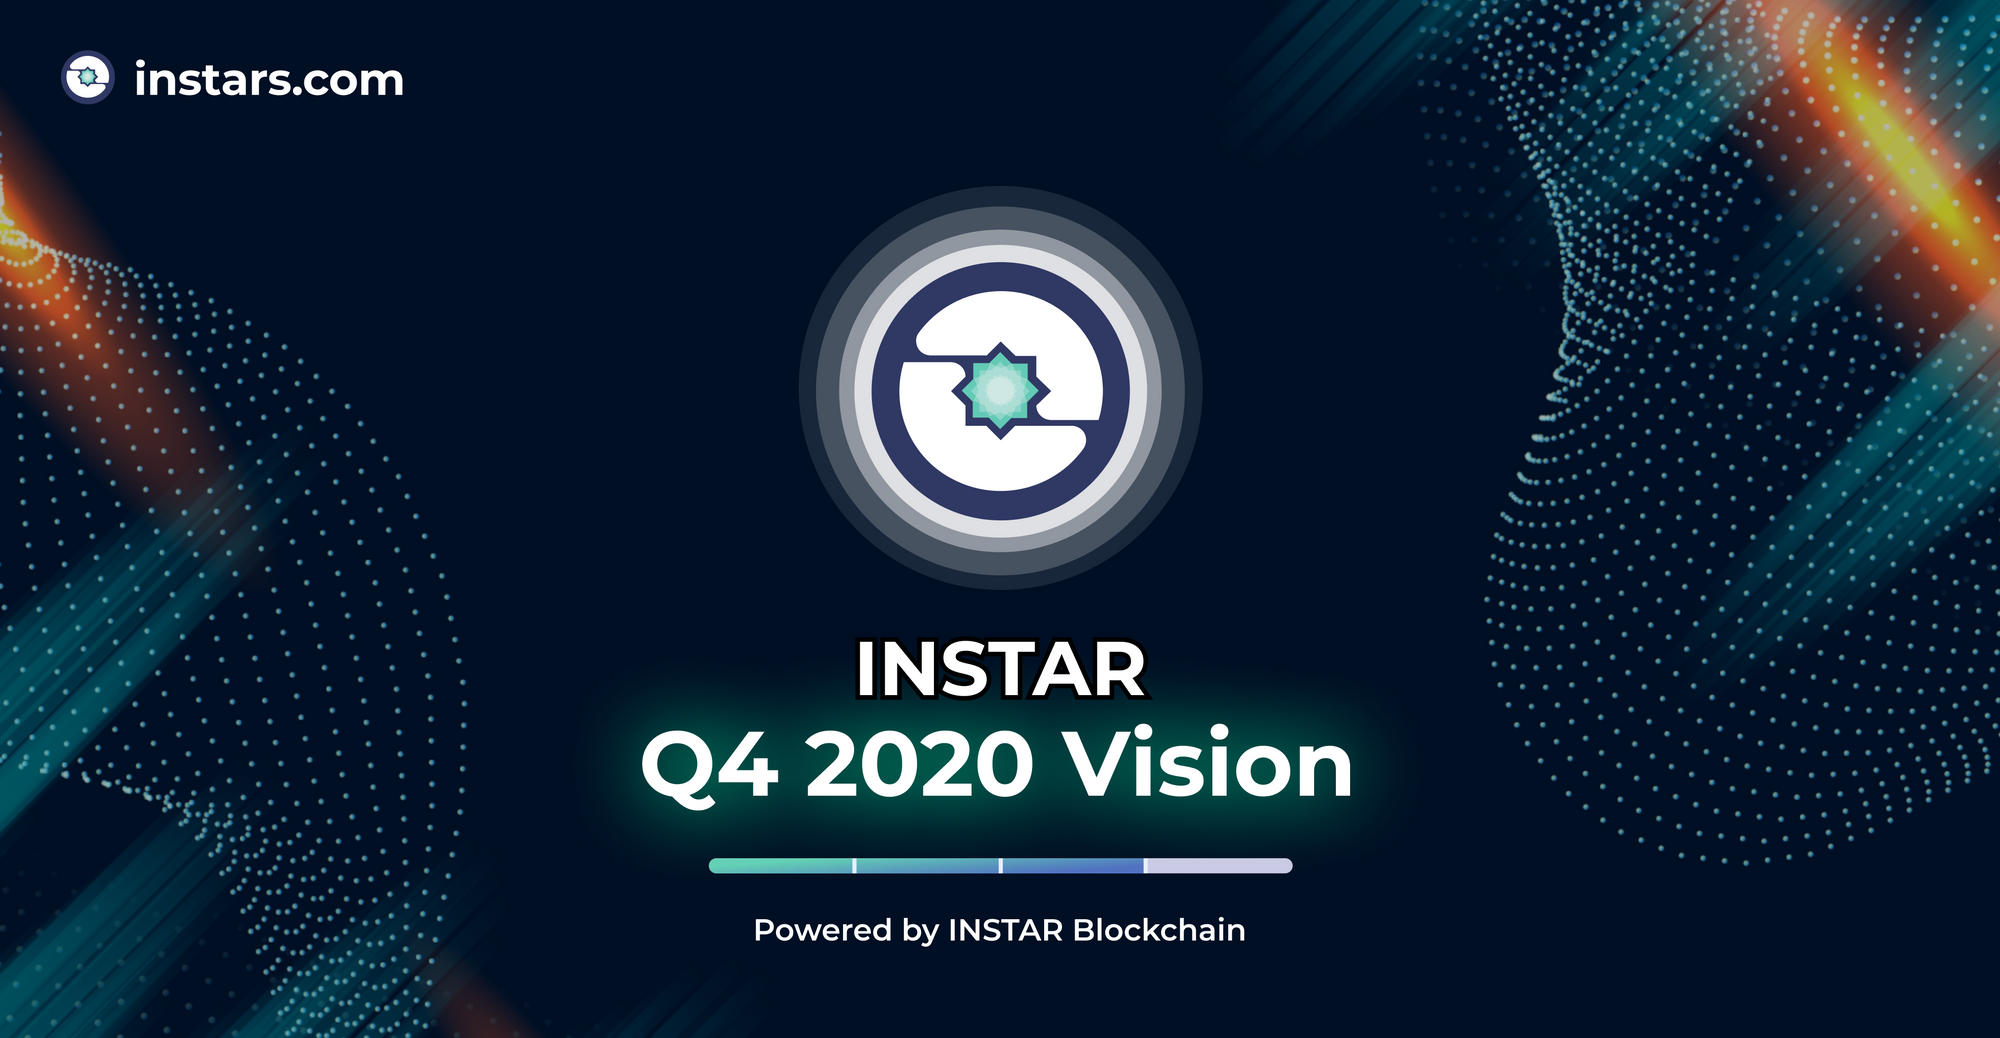 Instars Q4 2020 Vision: Keep Building, Increased Growth and Token Utility for Mass Adoption